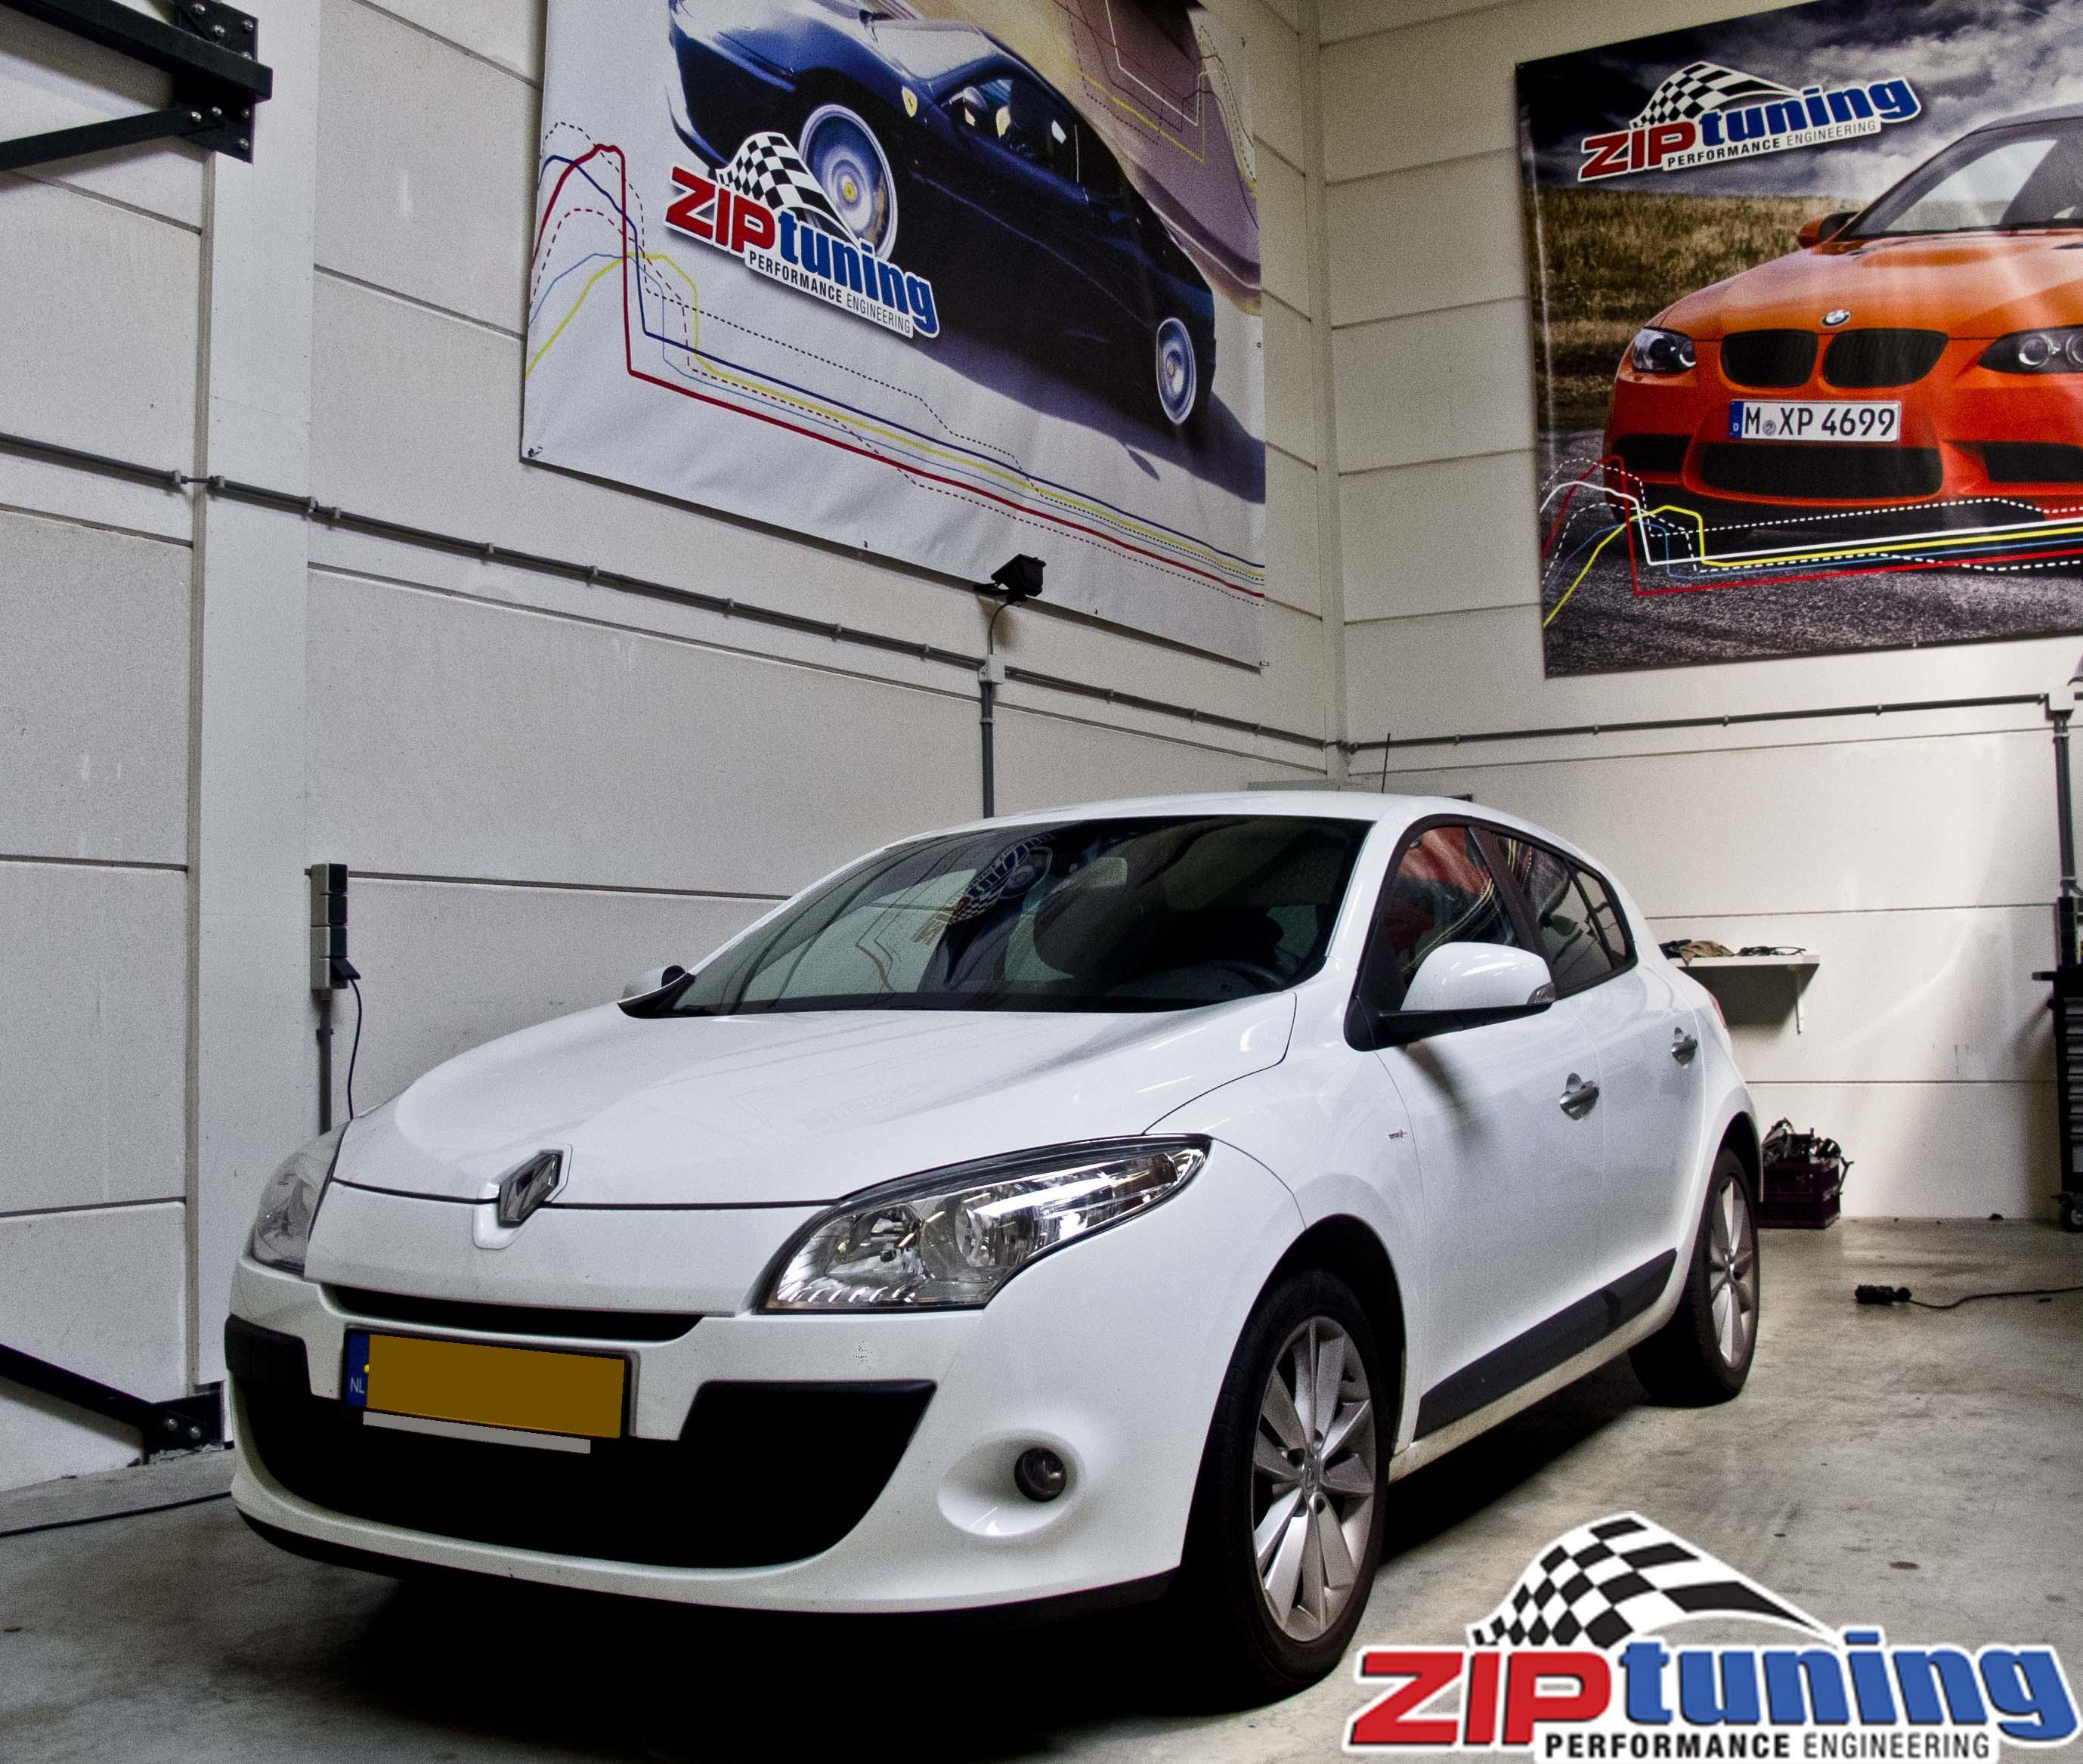 chiptuning renault megane 1 6 tce gt 205 ps iv 2015. Black Bedroom Furniture Sets. Home Design Ideas